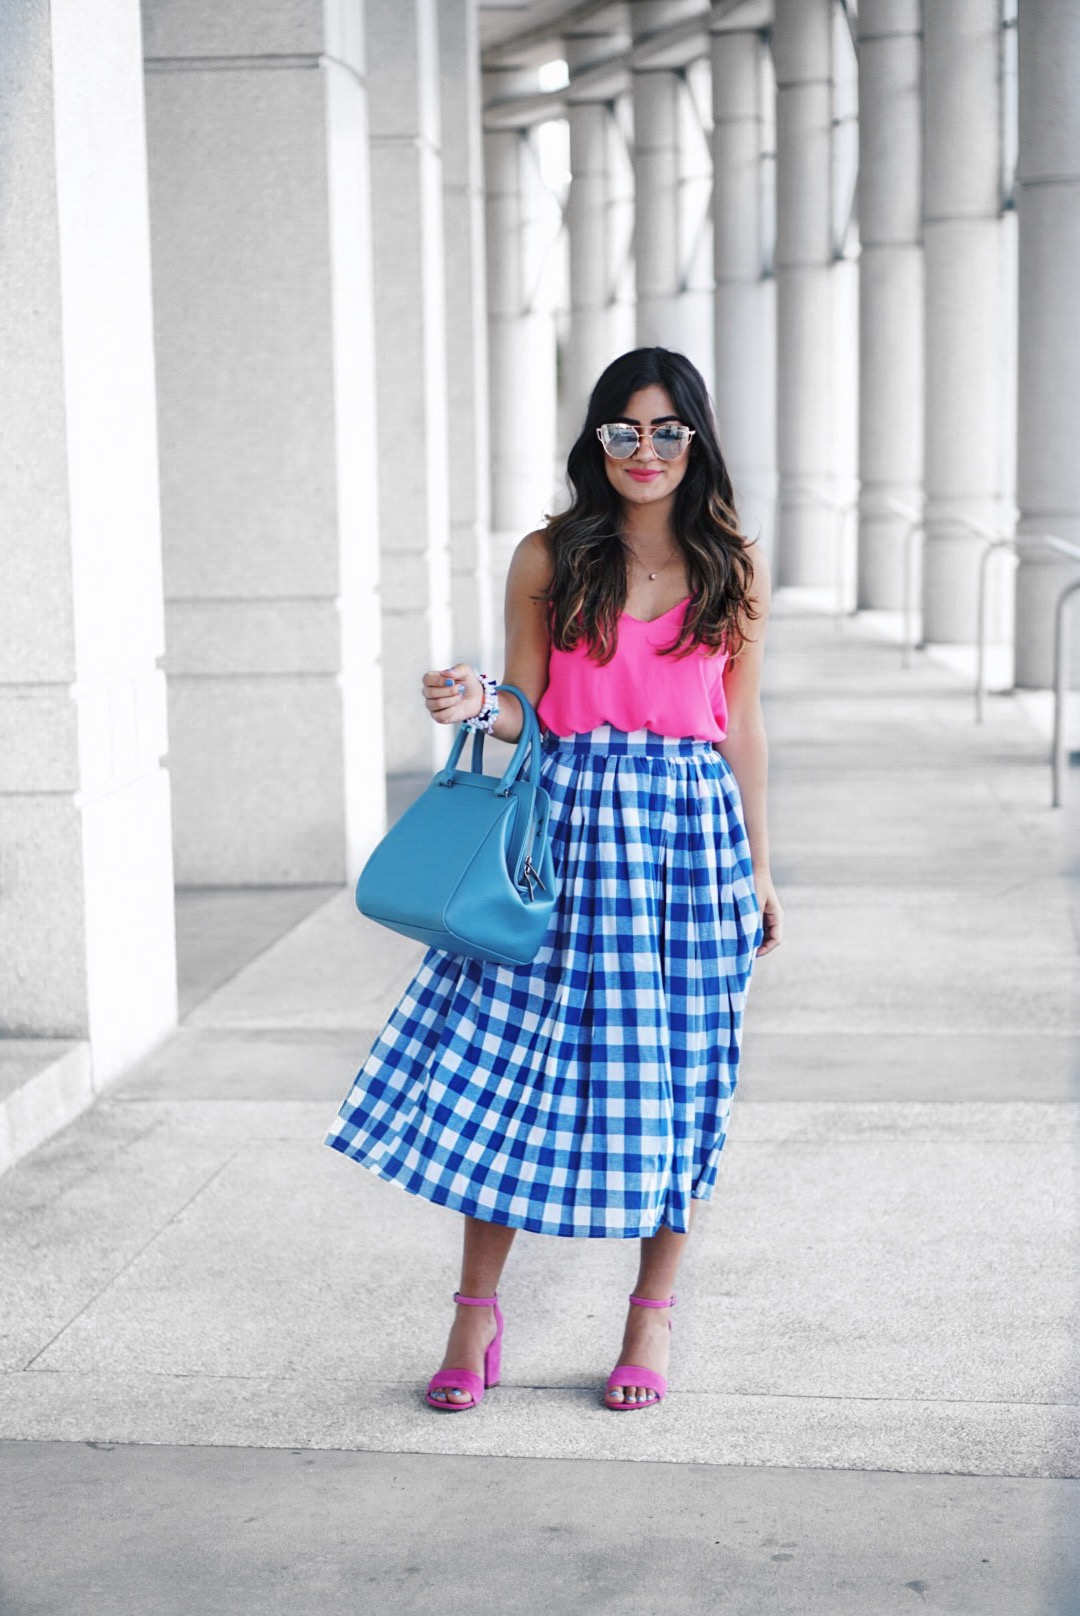 Summer Midi Skirt Outfit by Sugar Love Chic blogger Krista Perez